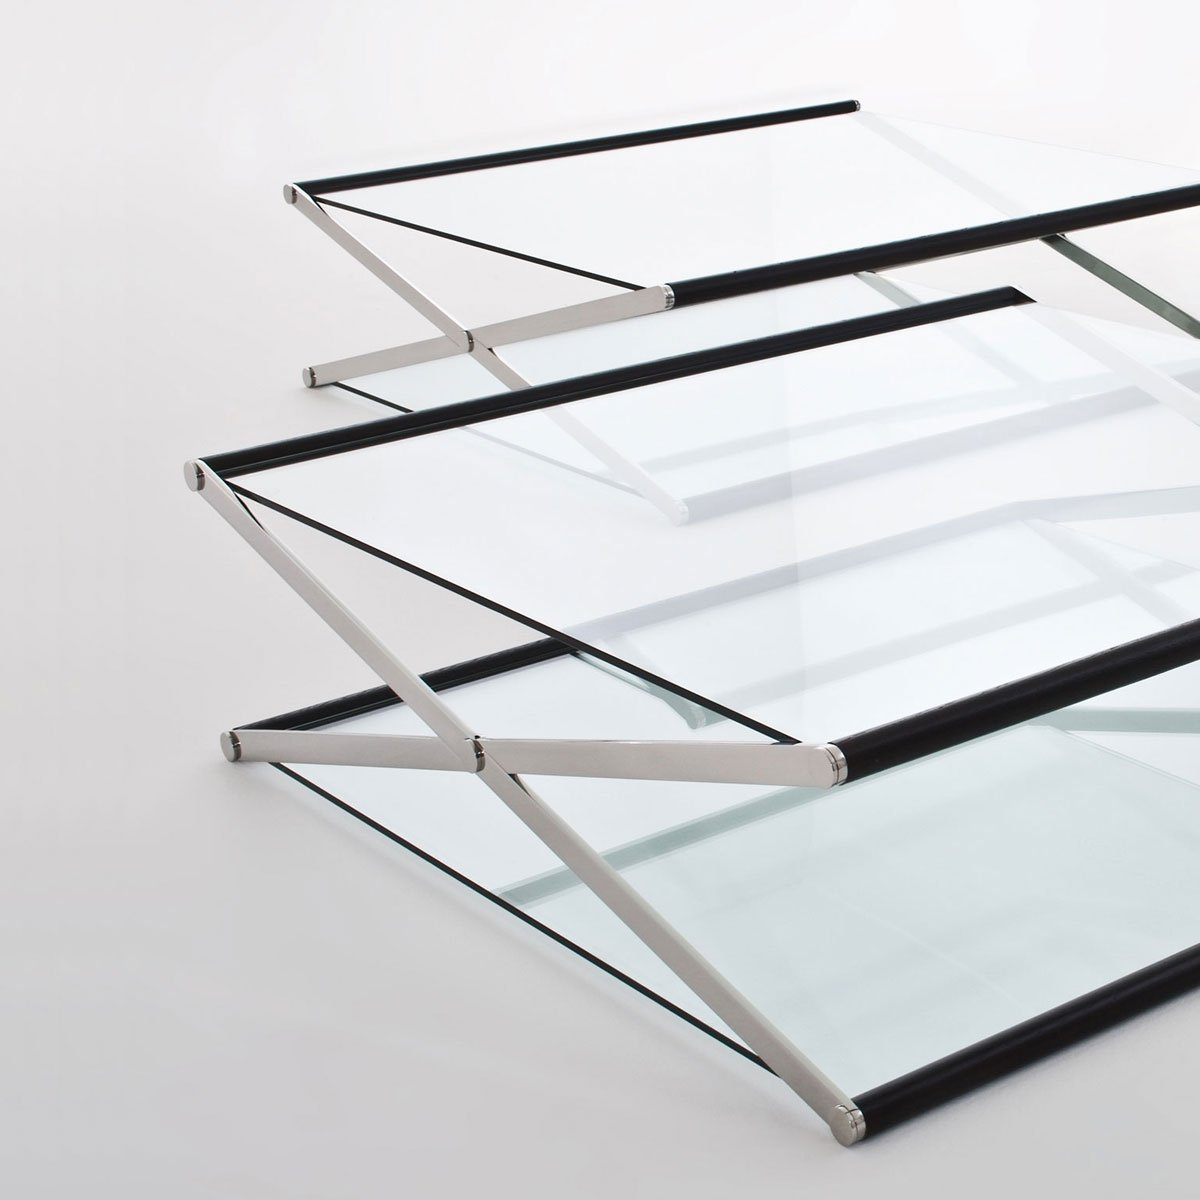 Nox Glass Wood and Metal Coffee Table by Gallotti amp Radic  : Nox Glass Wood and Metal Coffee Table by Gallotti Radice1 from glassfurniture.co.uk size 1200 x 1200 jpeg 35kB